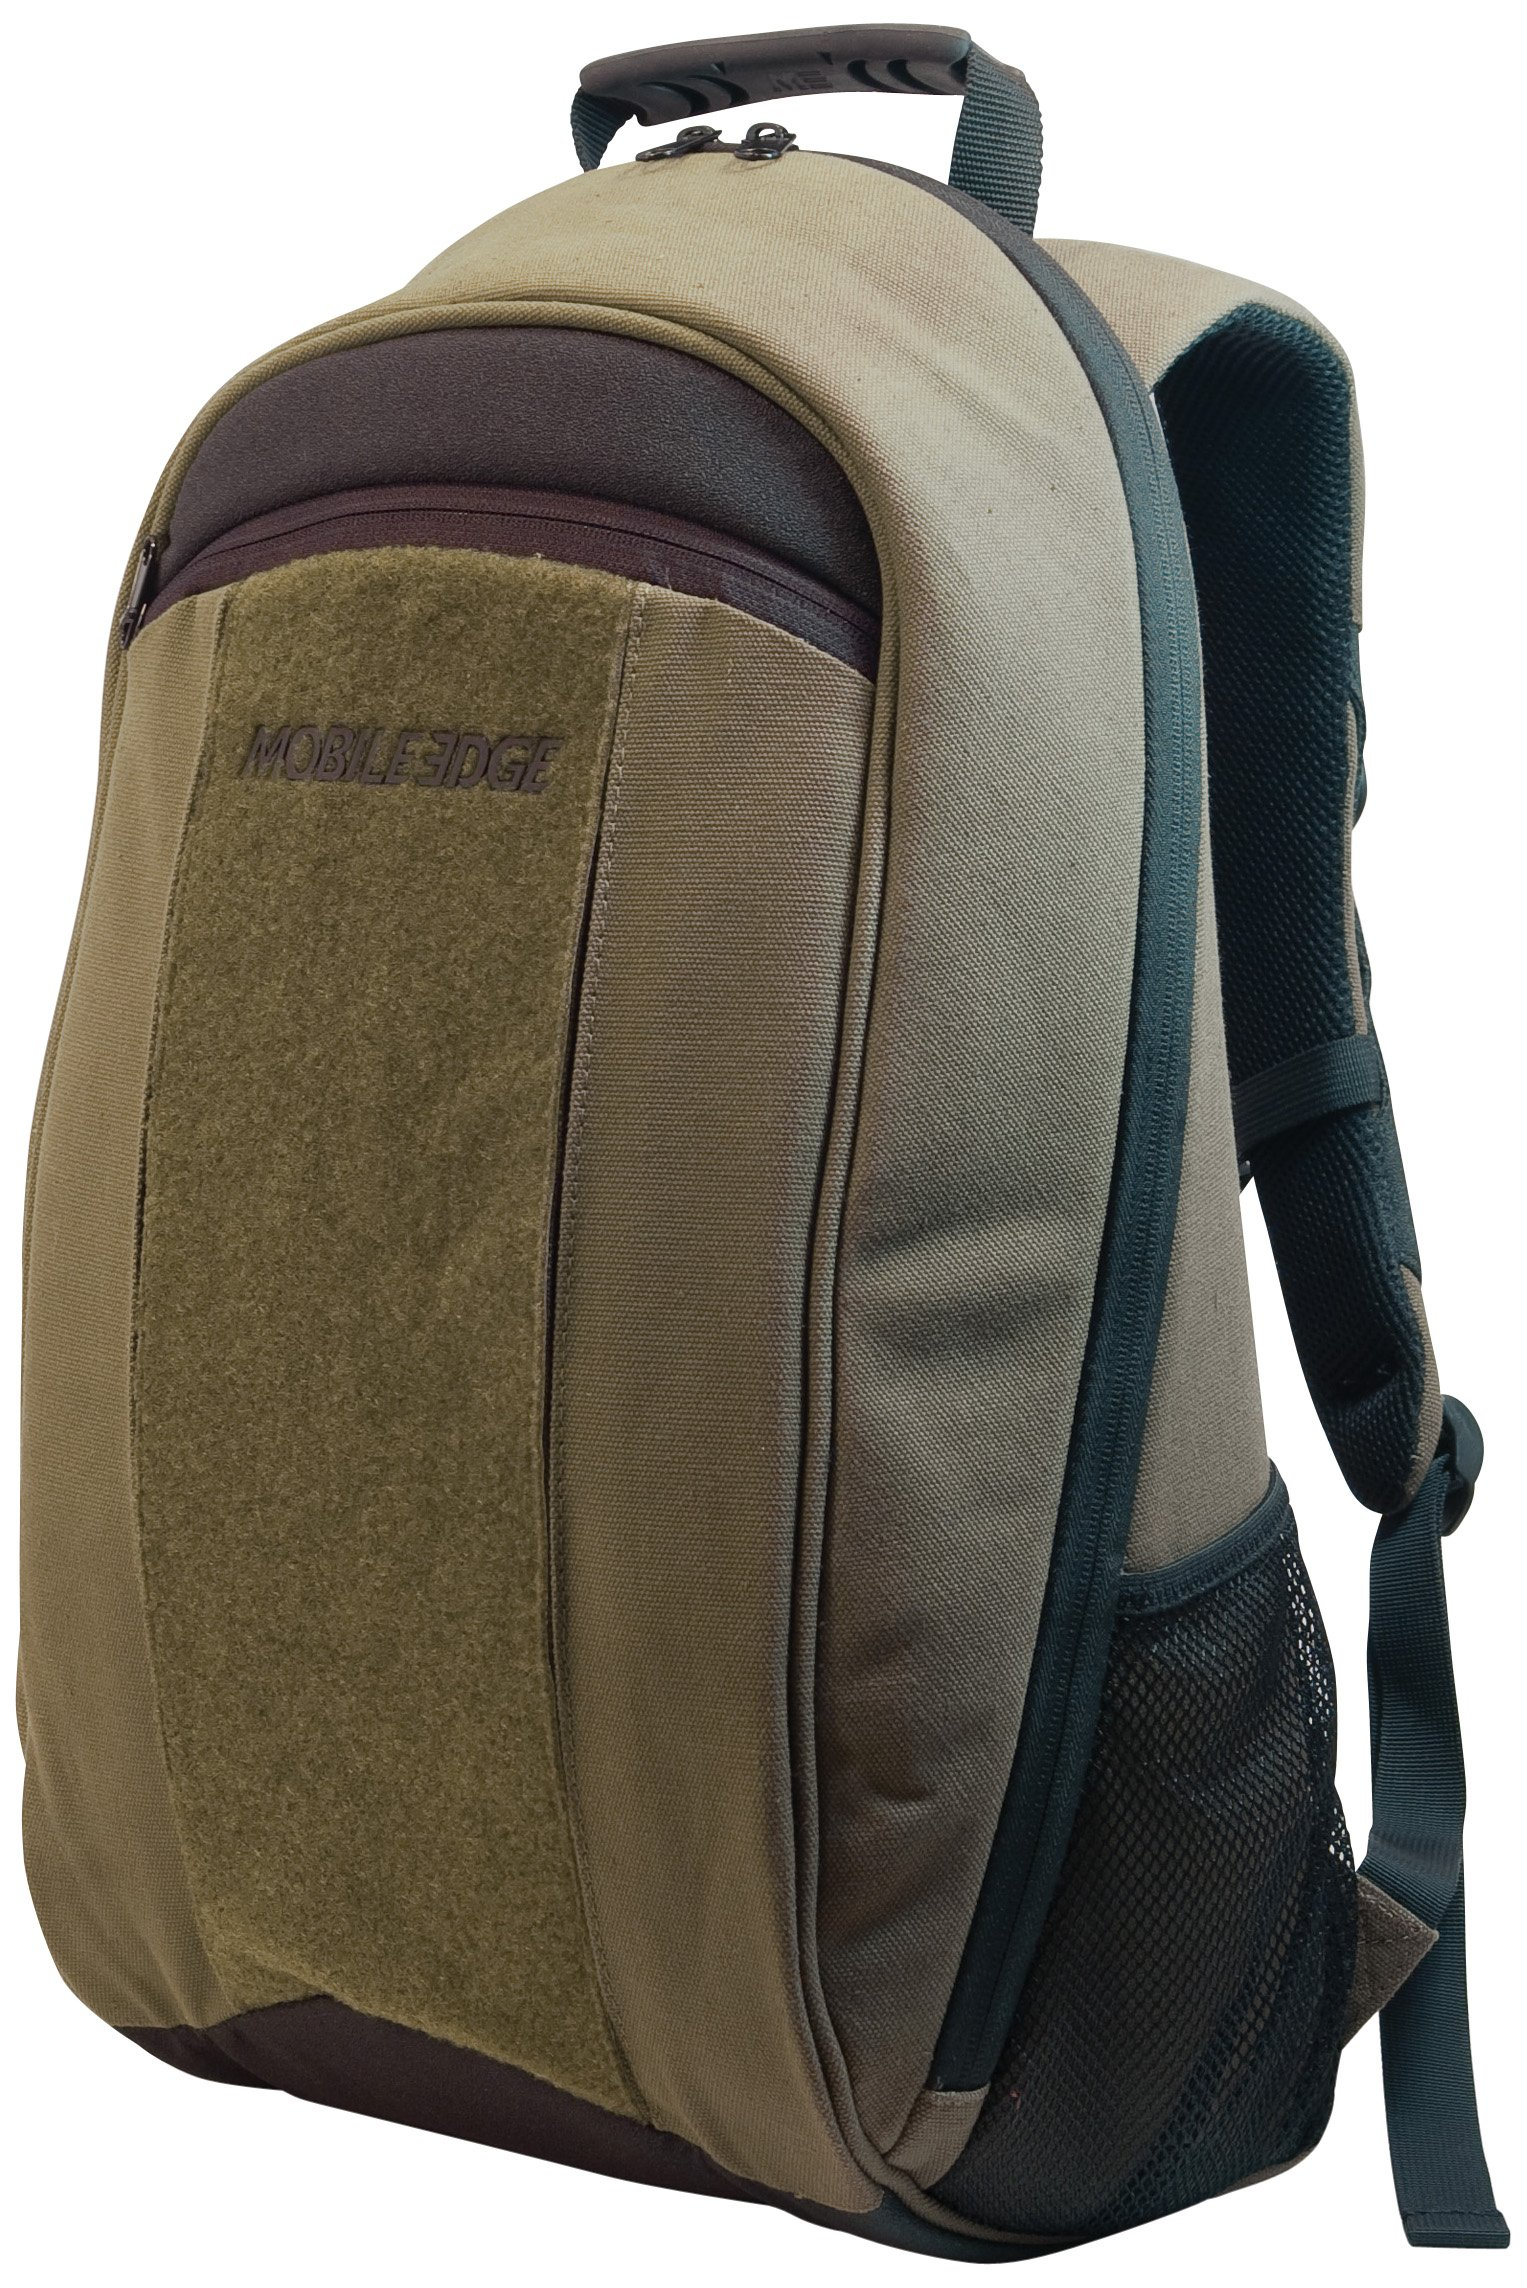 Mobile Edge Olive Green 17.3 Inch Laptop, Mac, Eco-Friendly Backpack, Cotton Canvas, for Men, Women Business, Students MECBP9